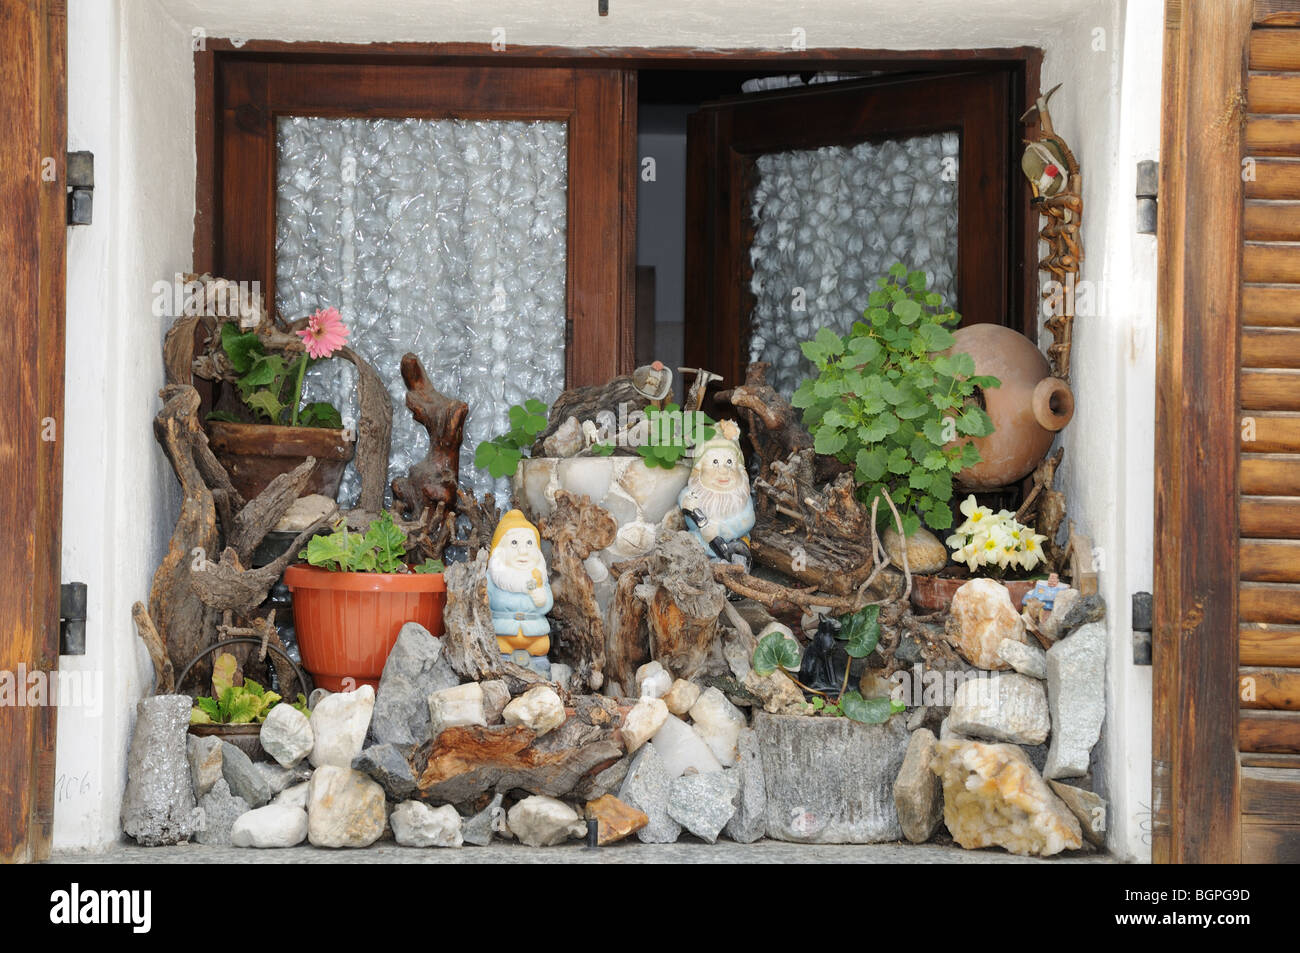 Charming window sill decorated with pepples stones flowers window box gnomes Pont St Martin Aosta Valley Italy - Stock Image